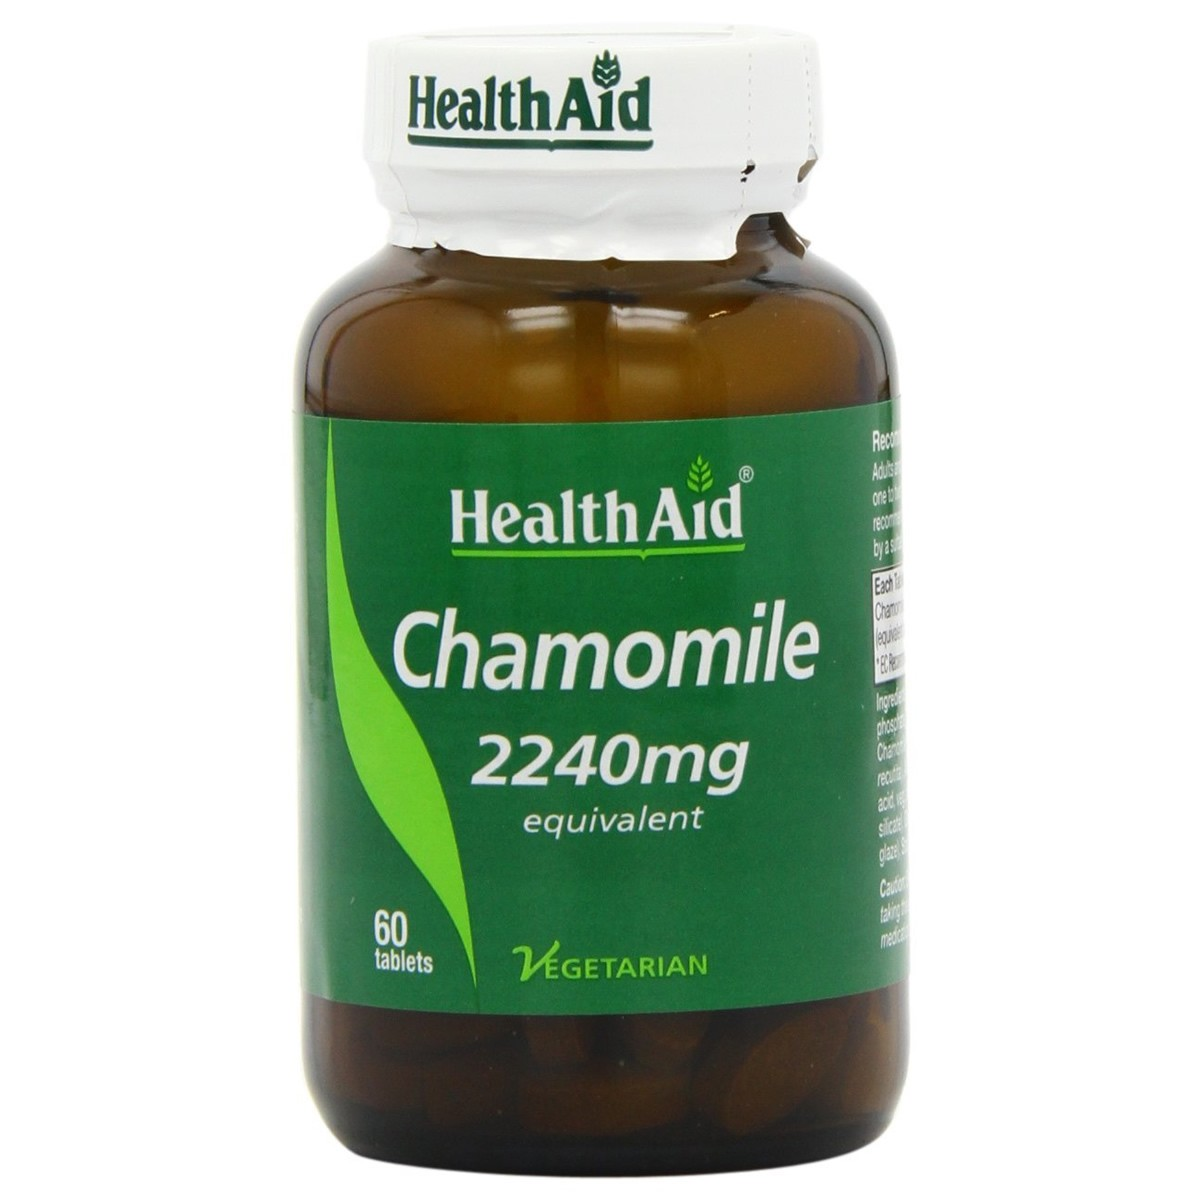 HealthAid Chamomile 2240mg - Standardised Tablets